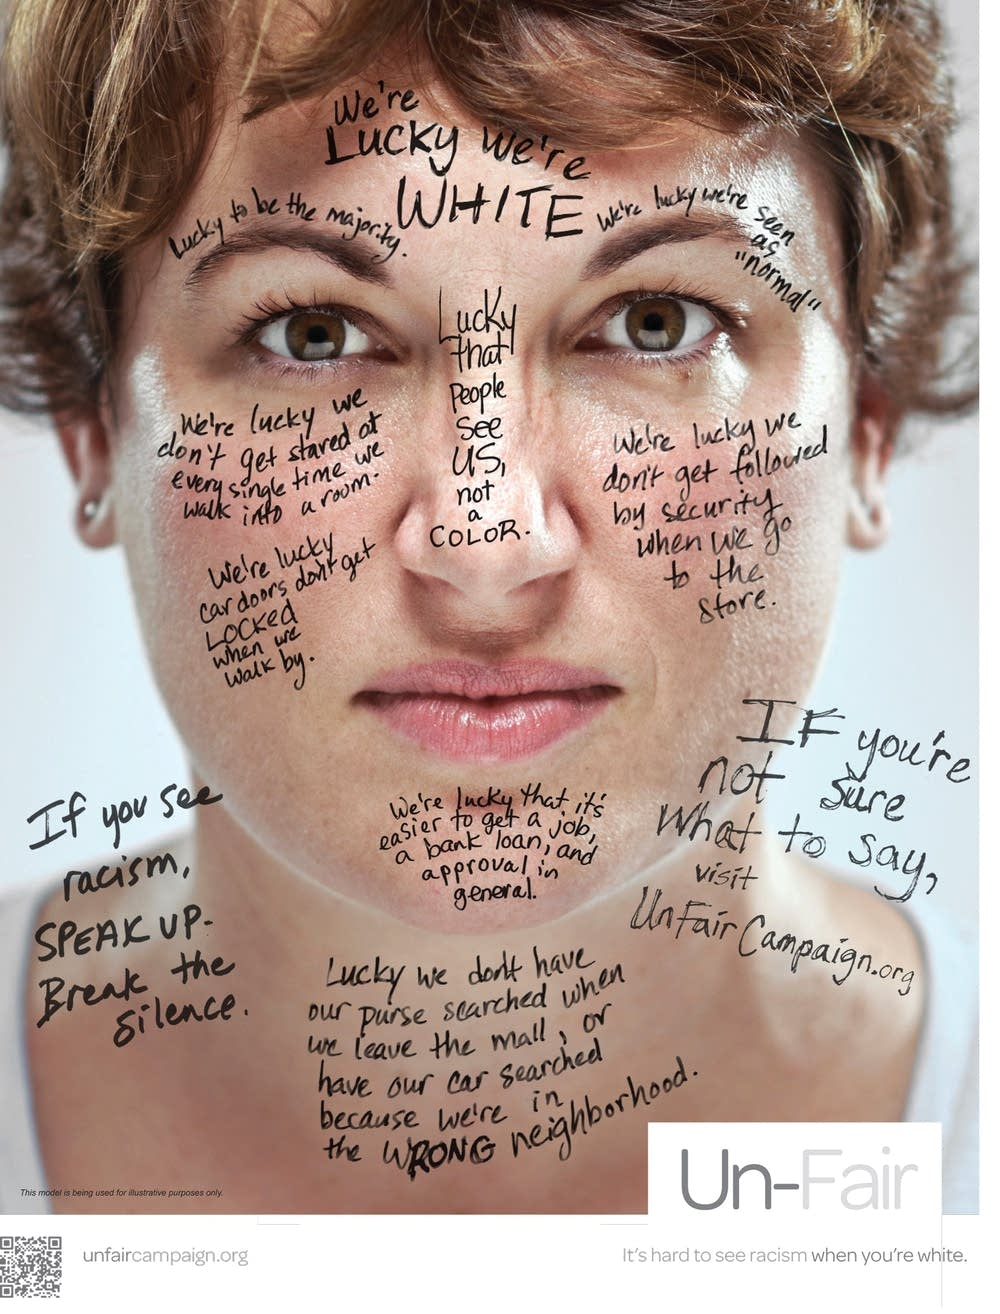 Duluth anti-racism campaign